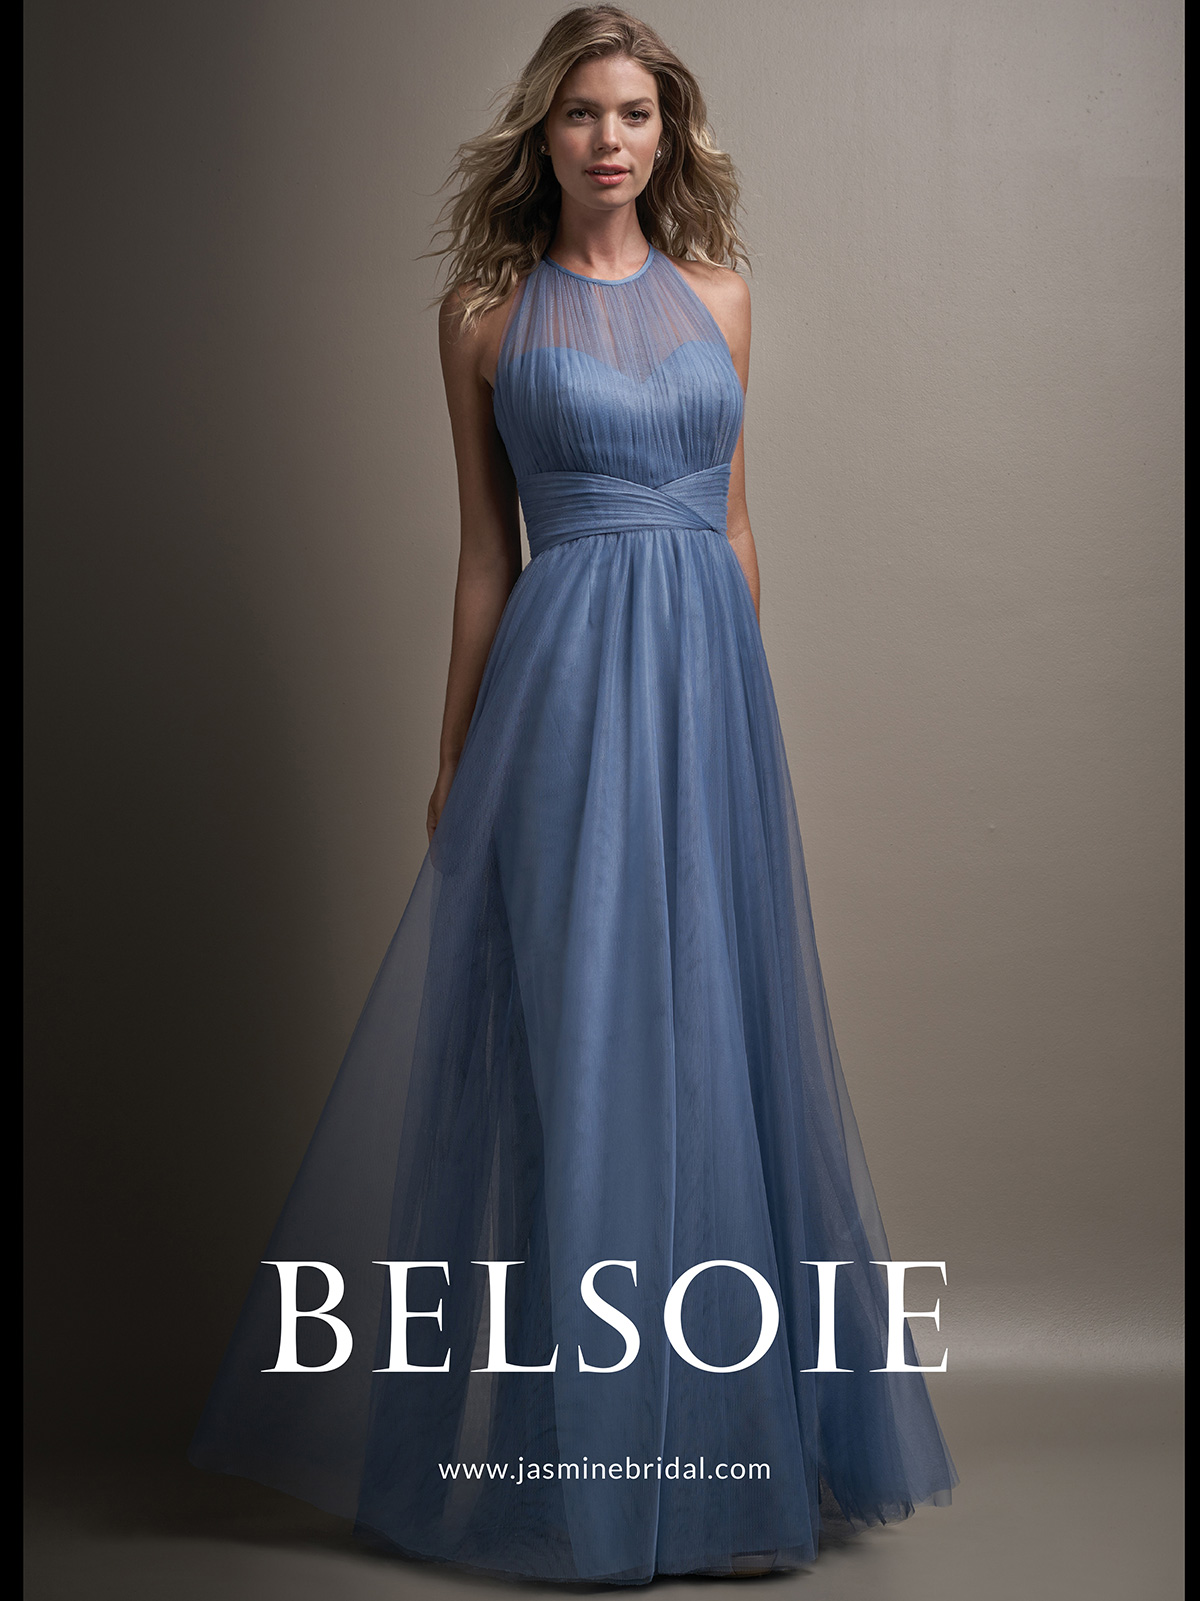 Belsoie l194011 tulle a line bridesmaid dressdimitradesigns belsoie l194011 halter illusion neckline bridesmaid dress ombrellifo Images